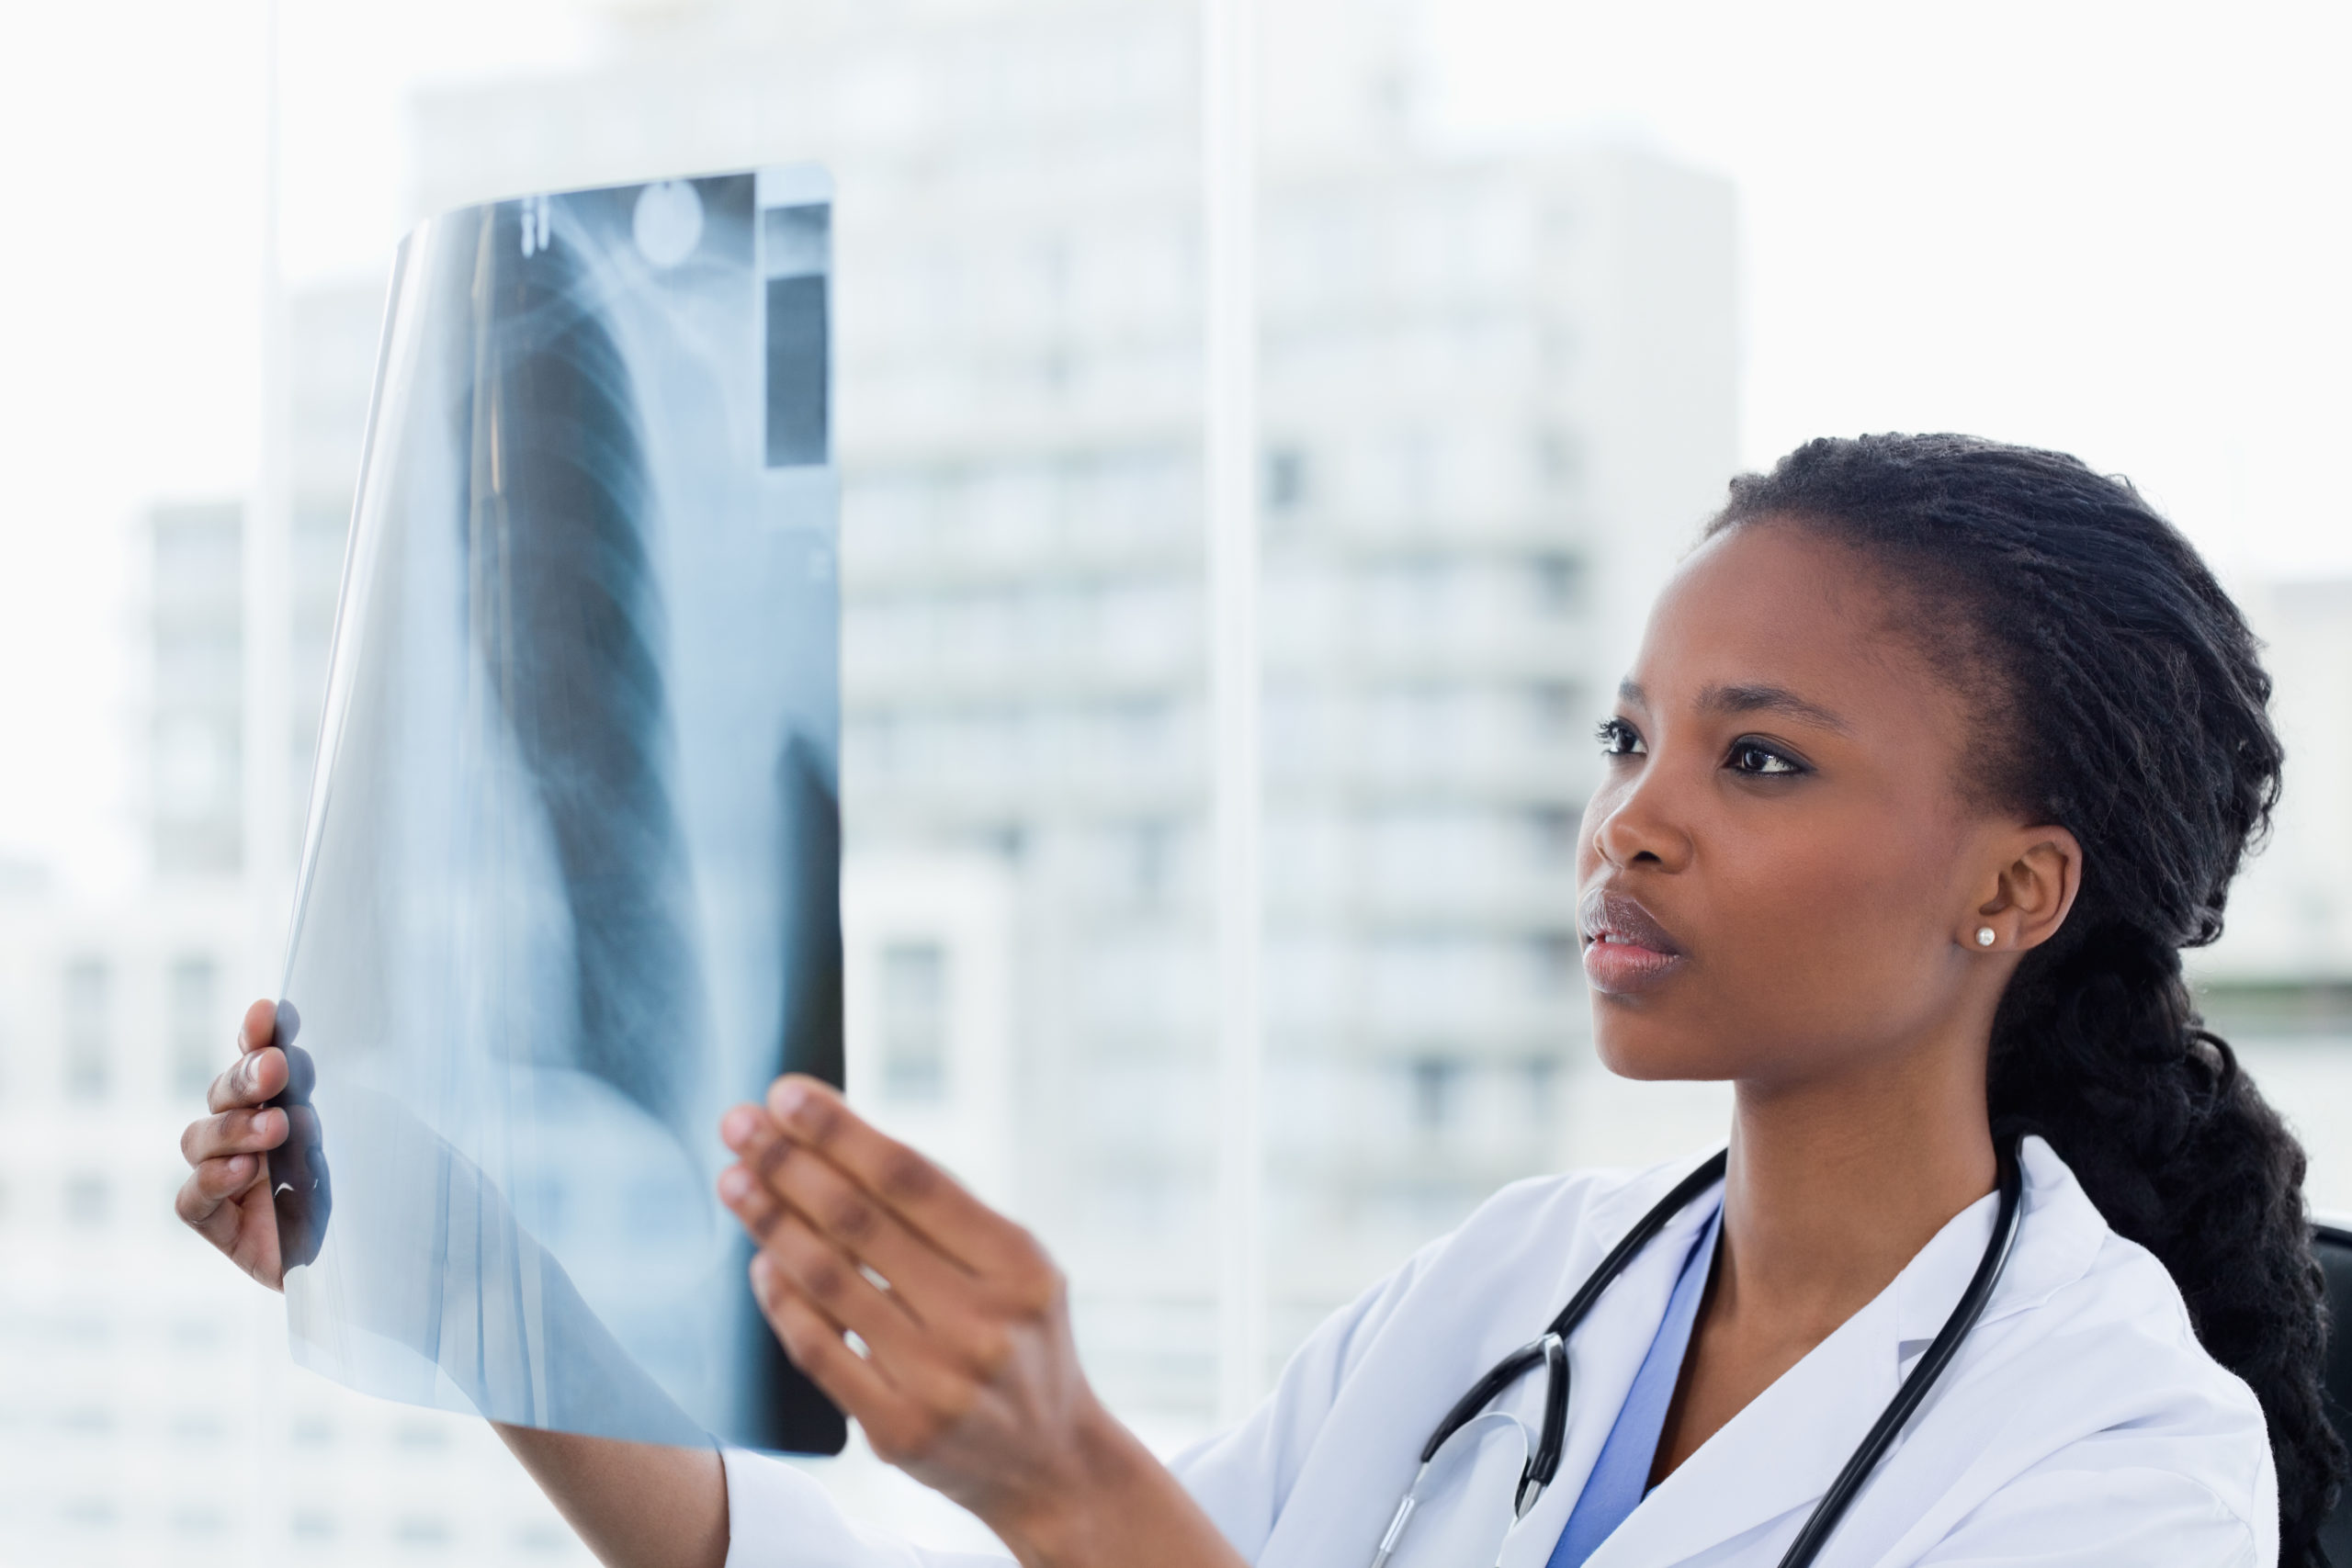 Female doctor looking at a set of X-rays in her office